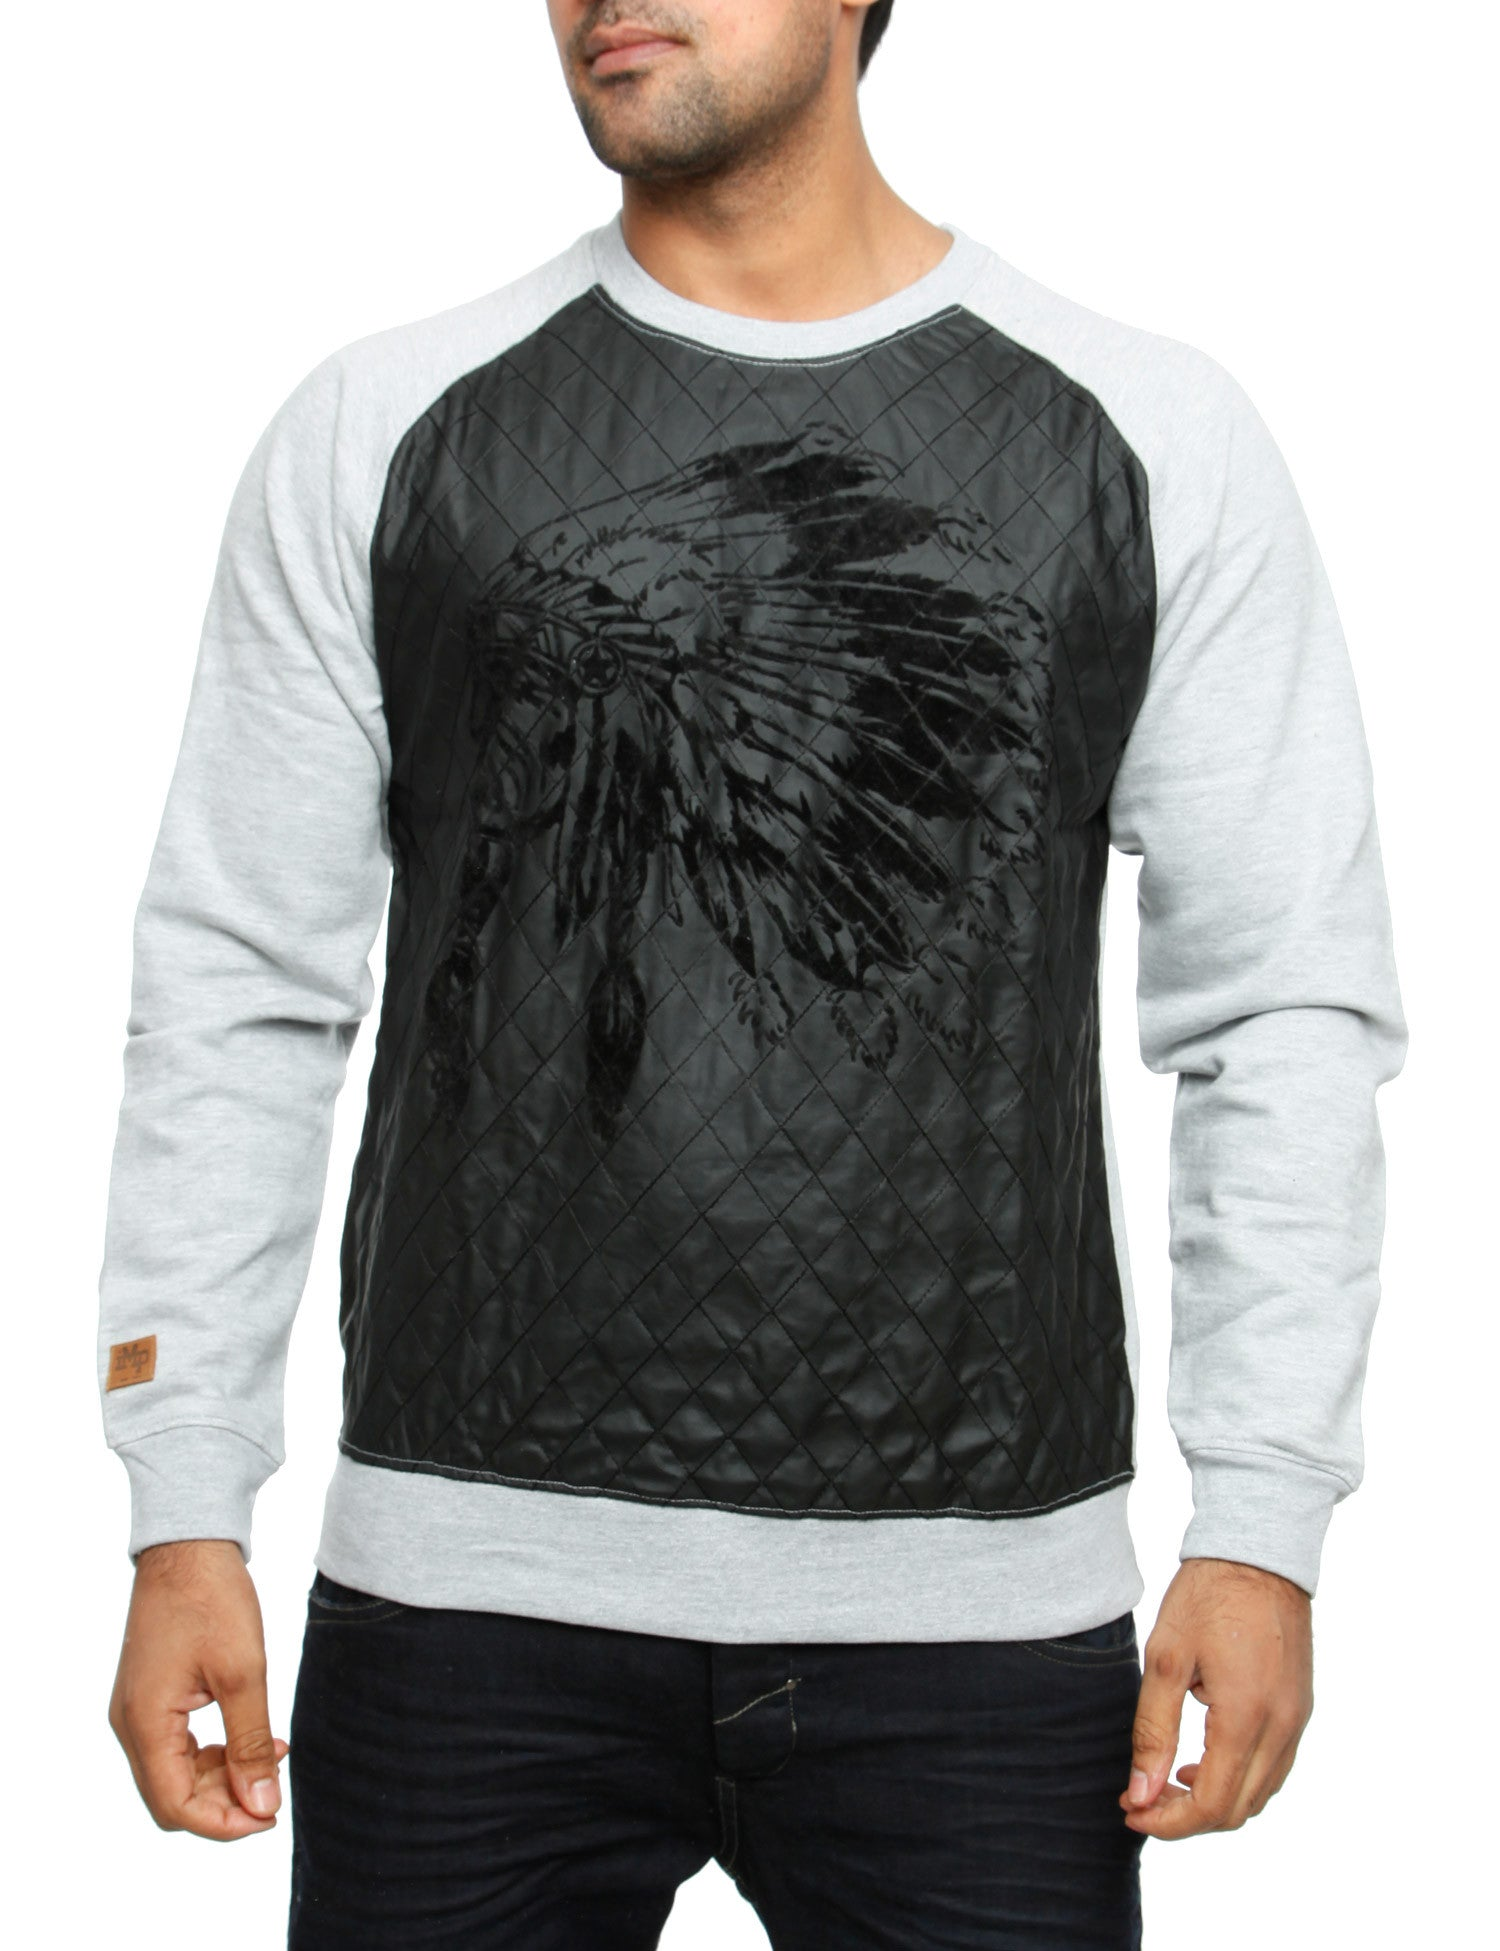 Imperious ´Chief´ Flocking PU Sweatshirt CS36 Grey